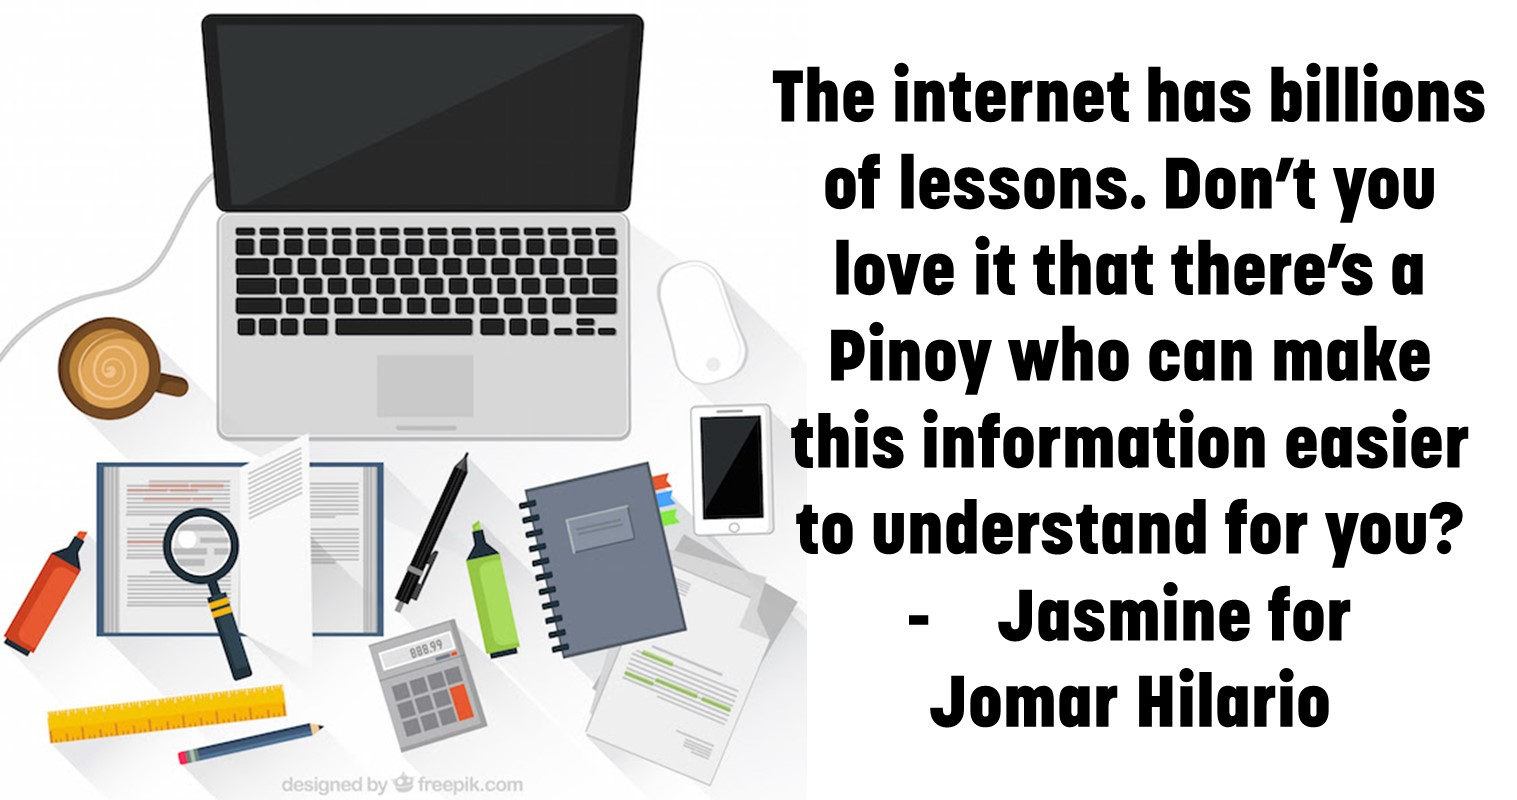 top signs instant virtual skills is not for you jomar hilario 16 you are easily overwhelmed by many lessons hey the internet has billions of lessons don t you love it that there s a pinoy who can make this